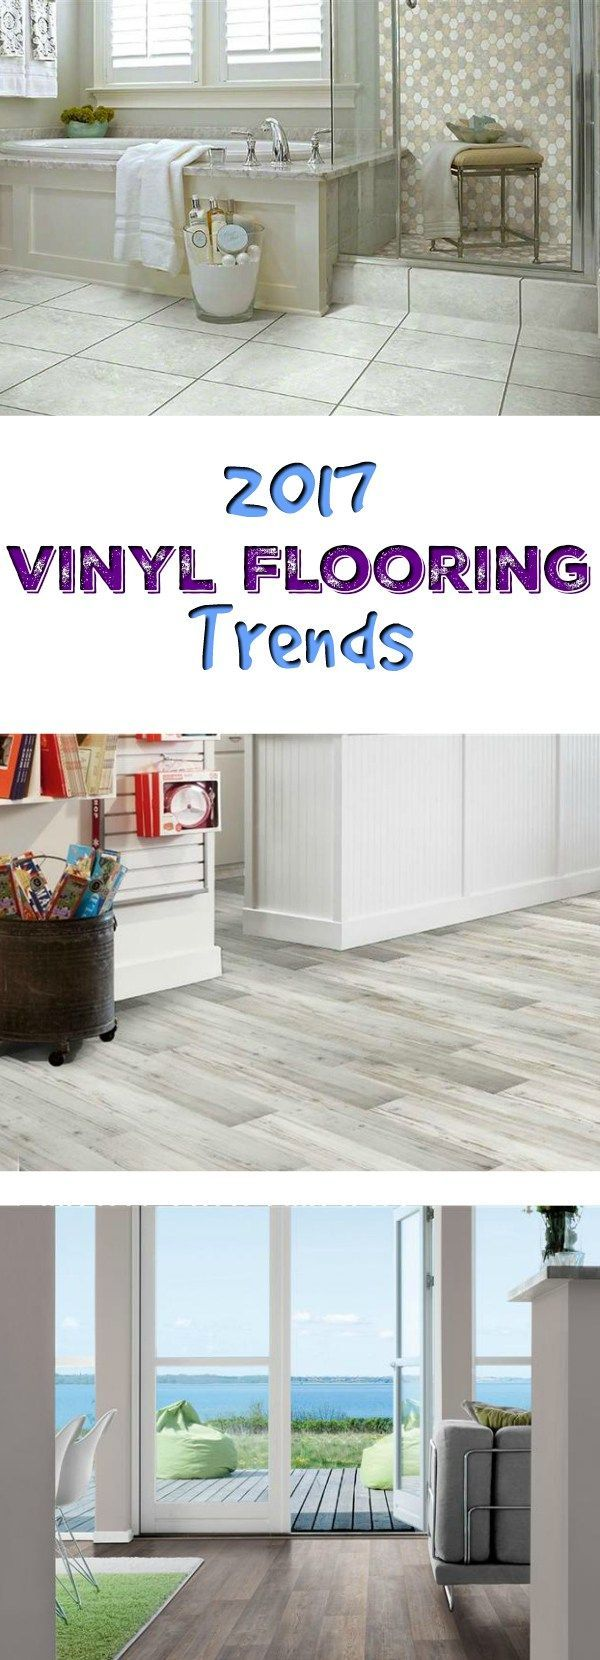 2017 Laminate Flooring Trends 11 Ideas for Show Stopping Floors